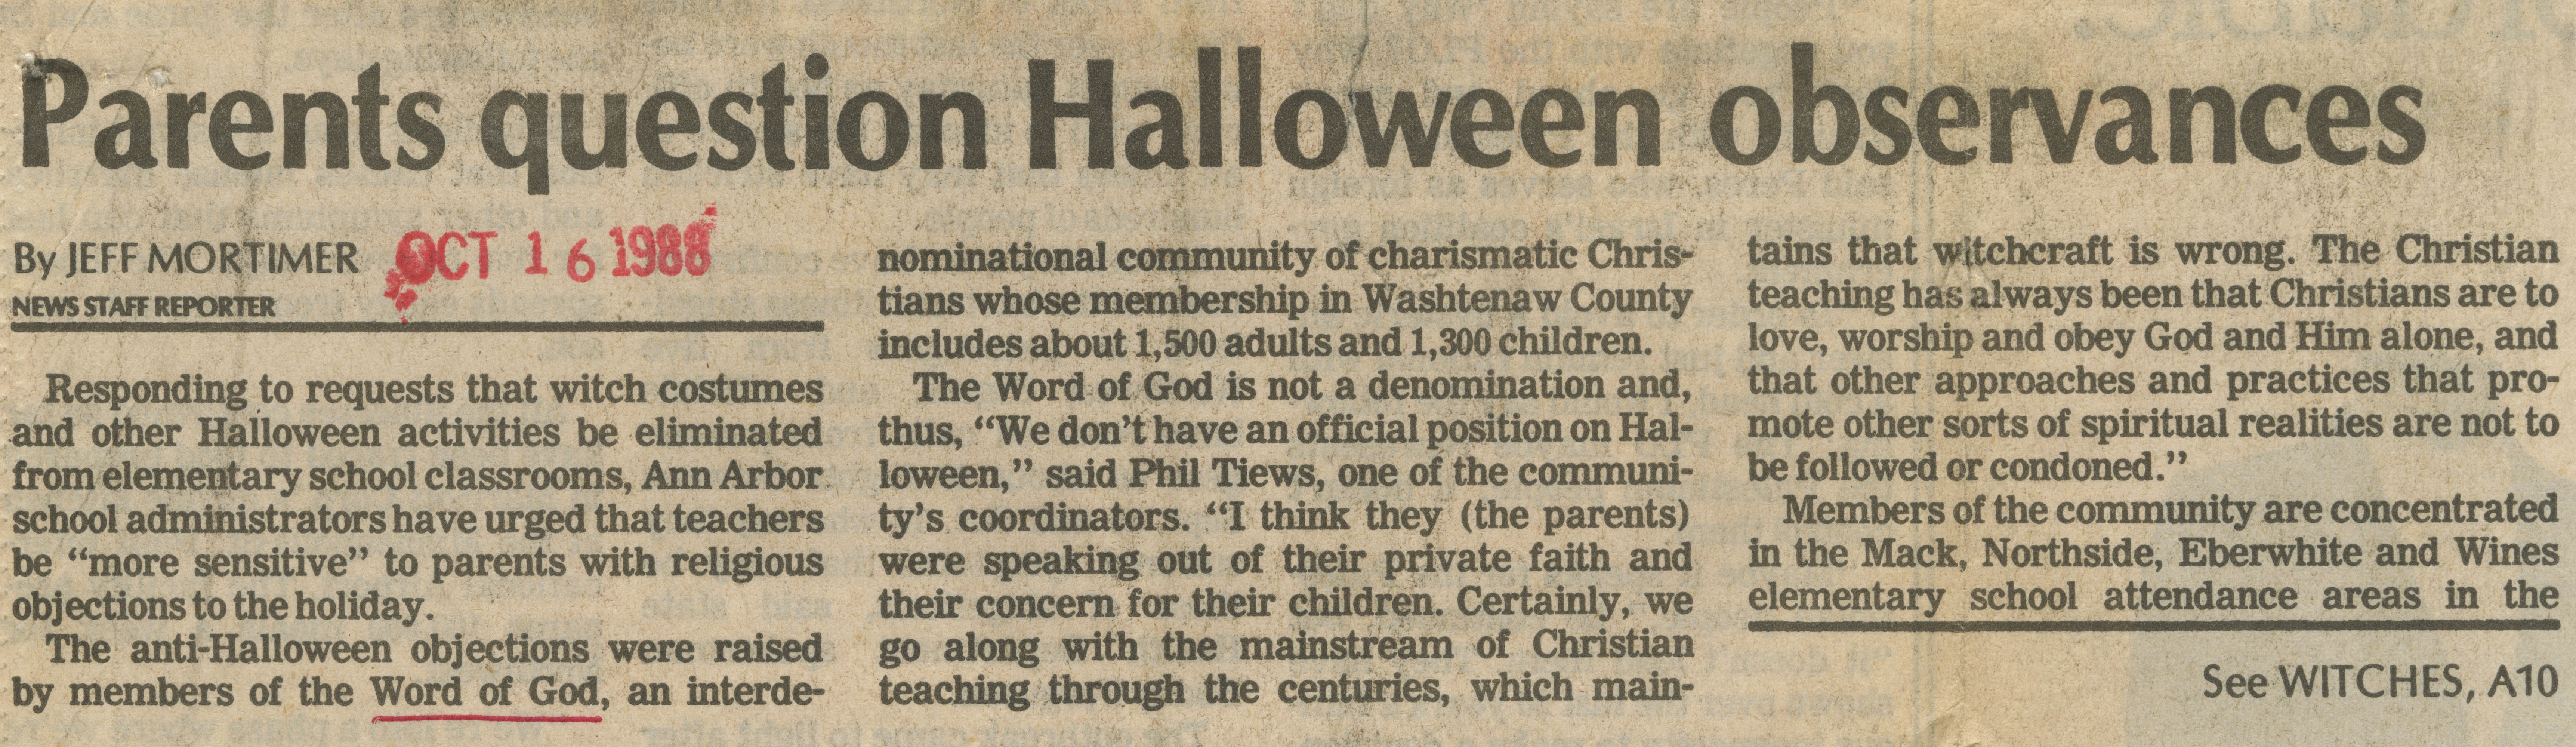 Parents Question Halloween Observances image